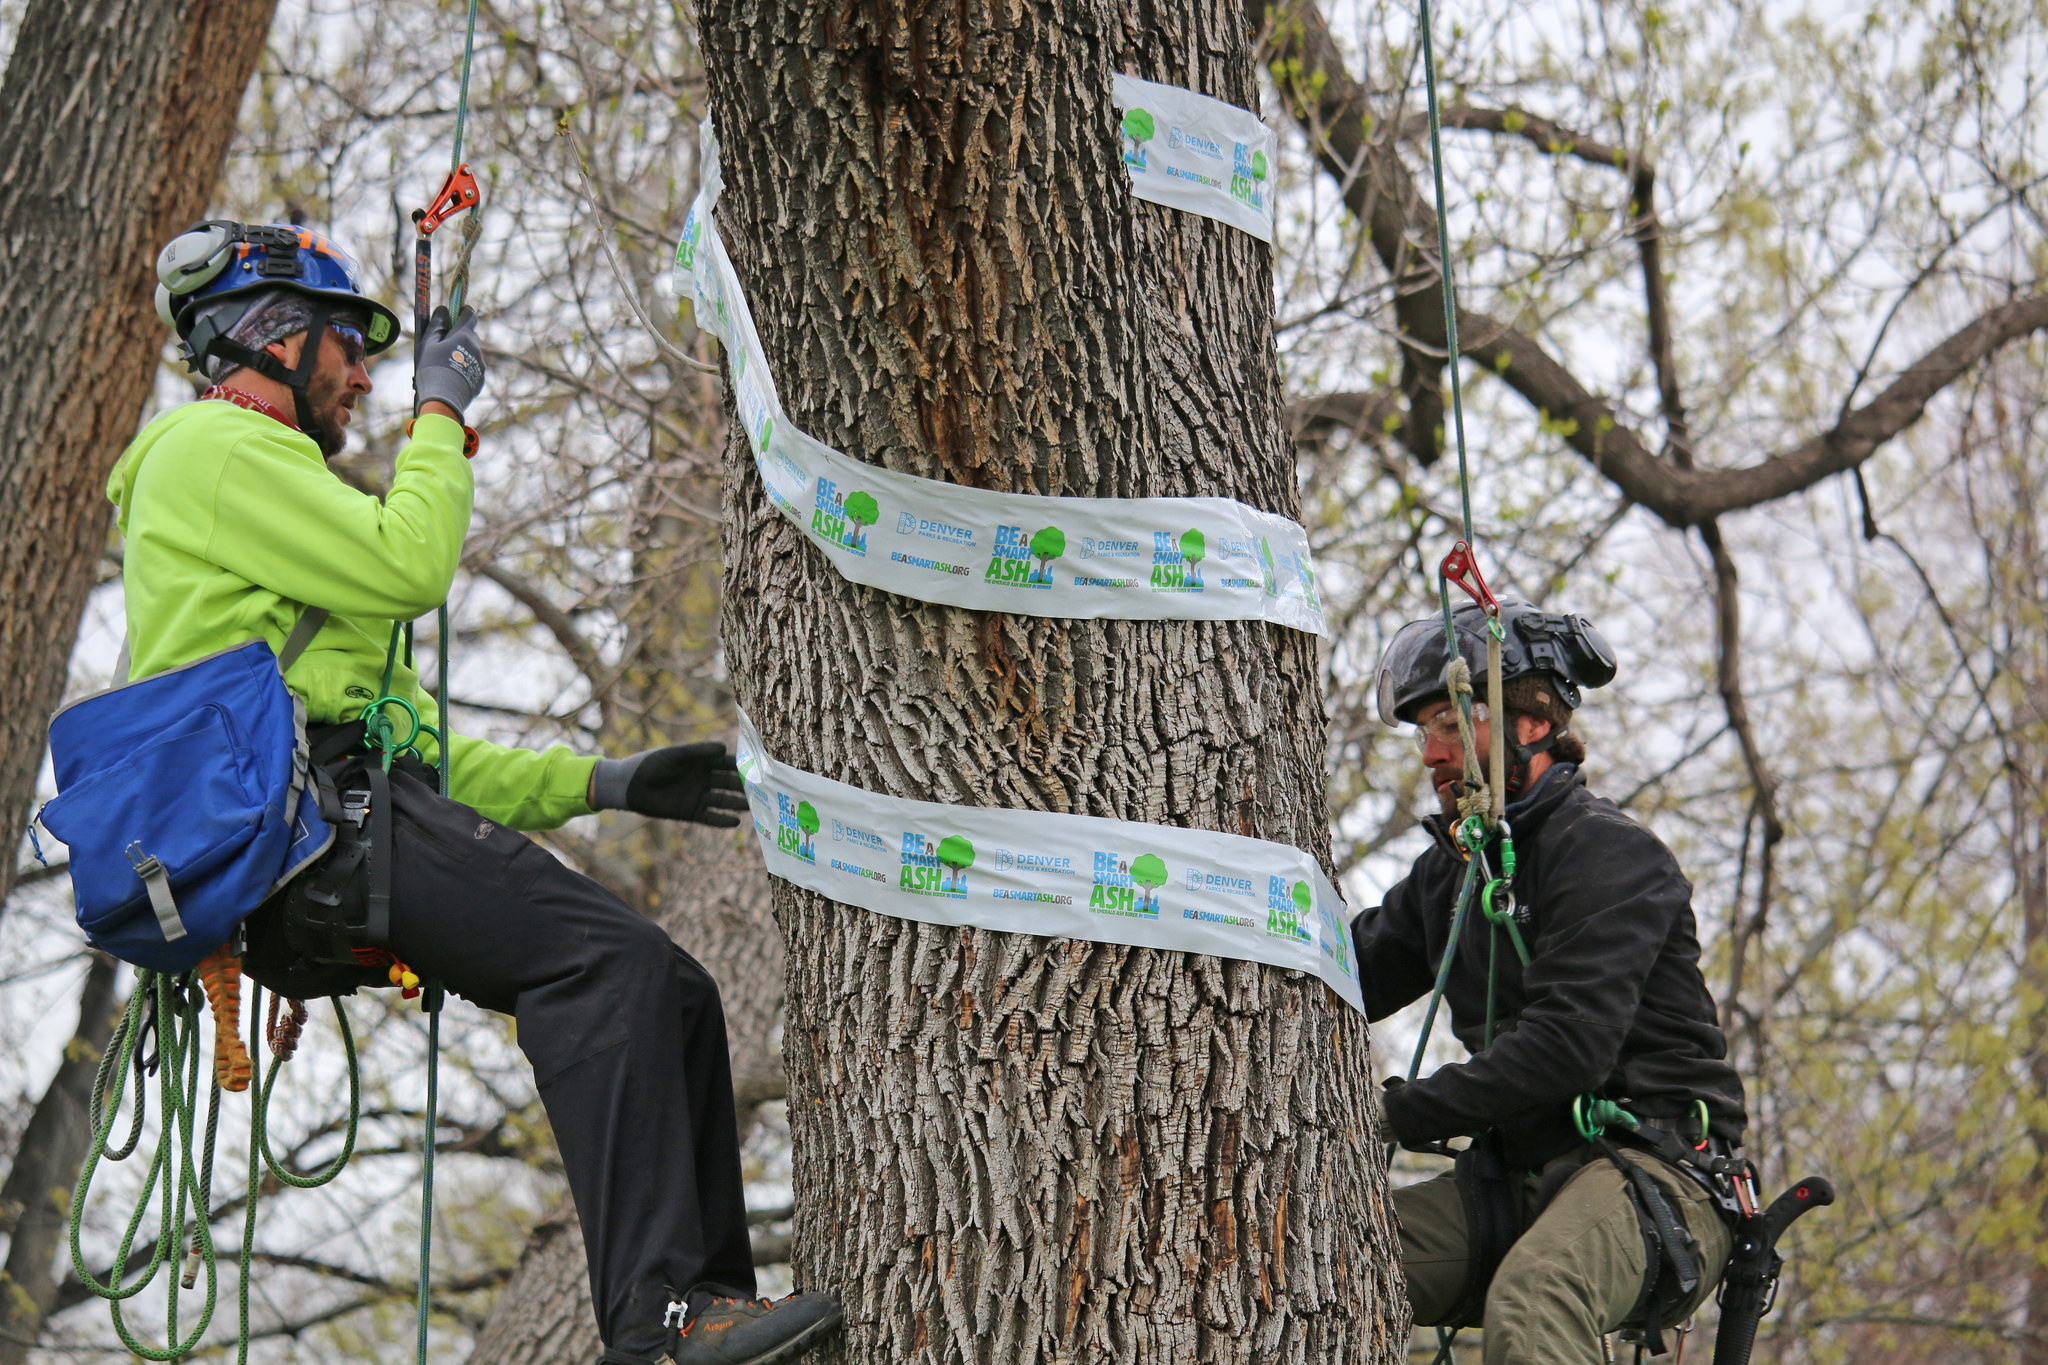 A Pair Of Certified Arborists Tend To An Ash Tree In Denver's City Park | Be A Smart Ash Denver